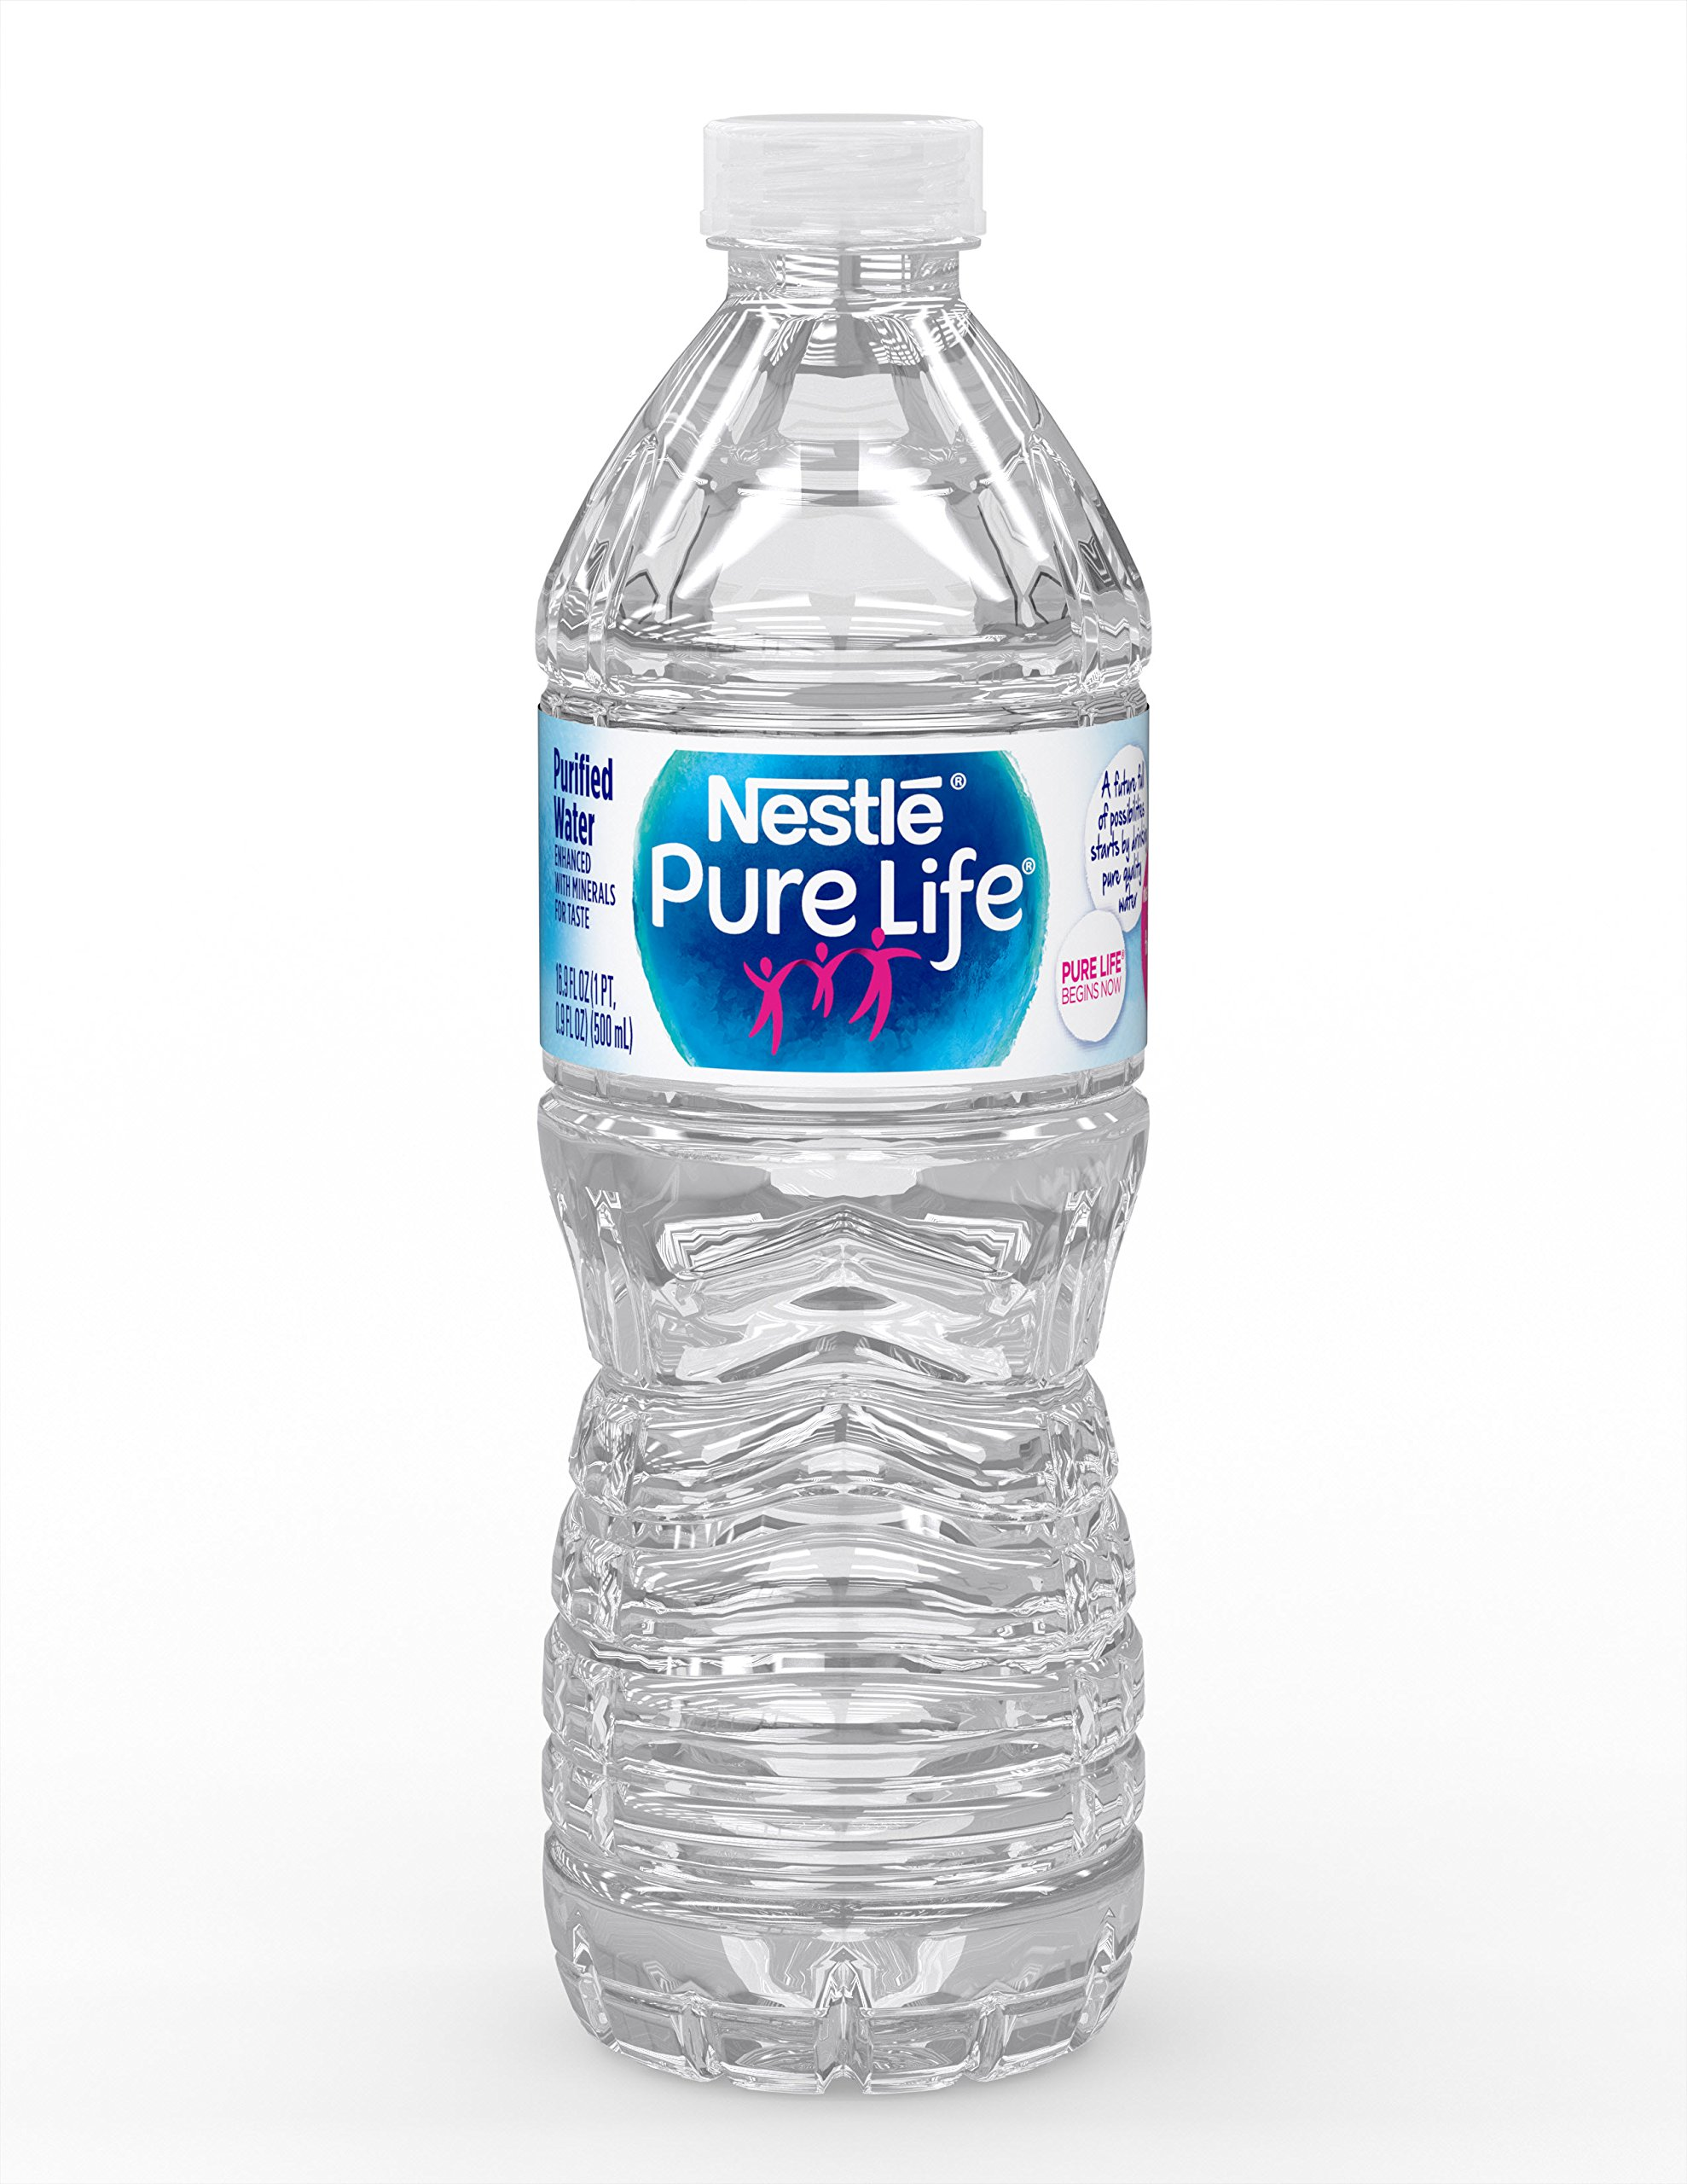 Nestle Pure Life Purified Water, 16 9 fl oz  Plastic Bottles (12 count)